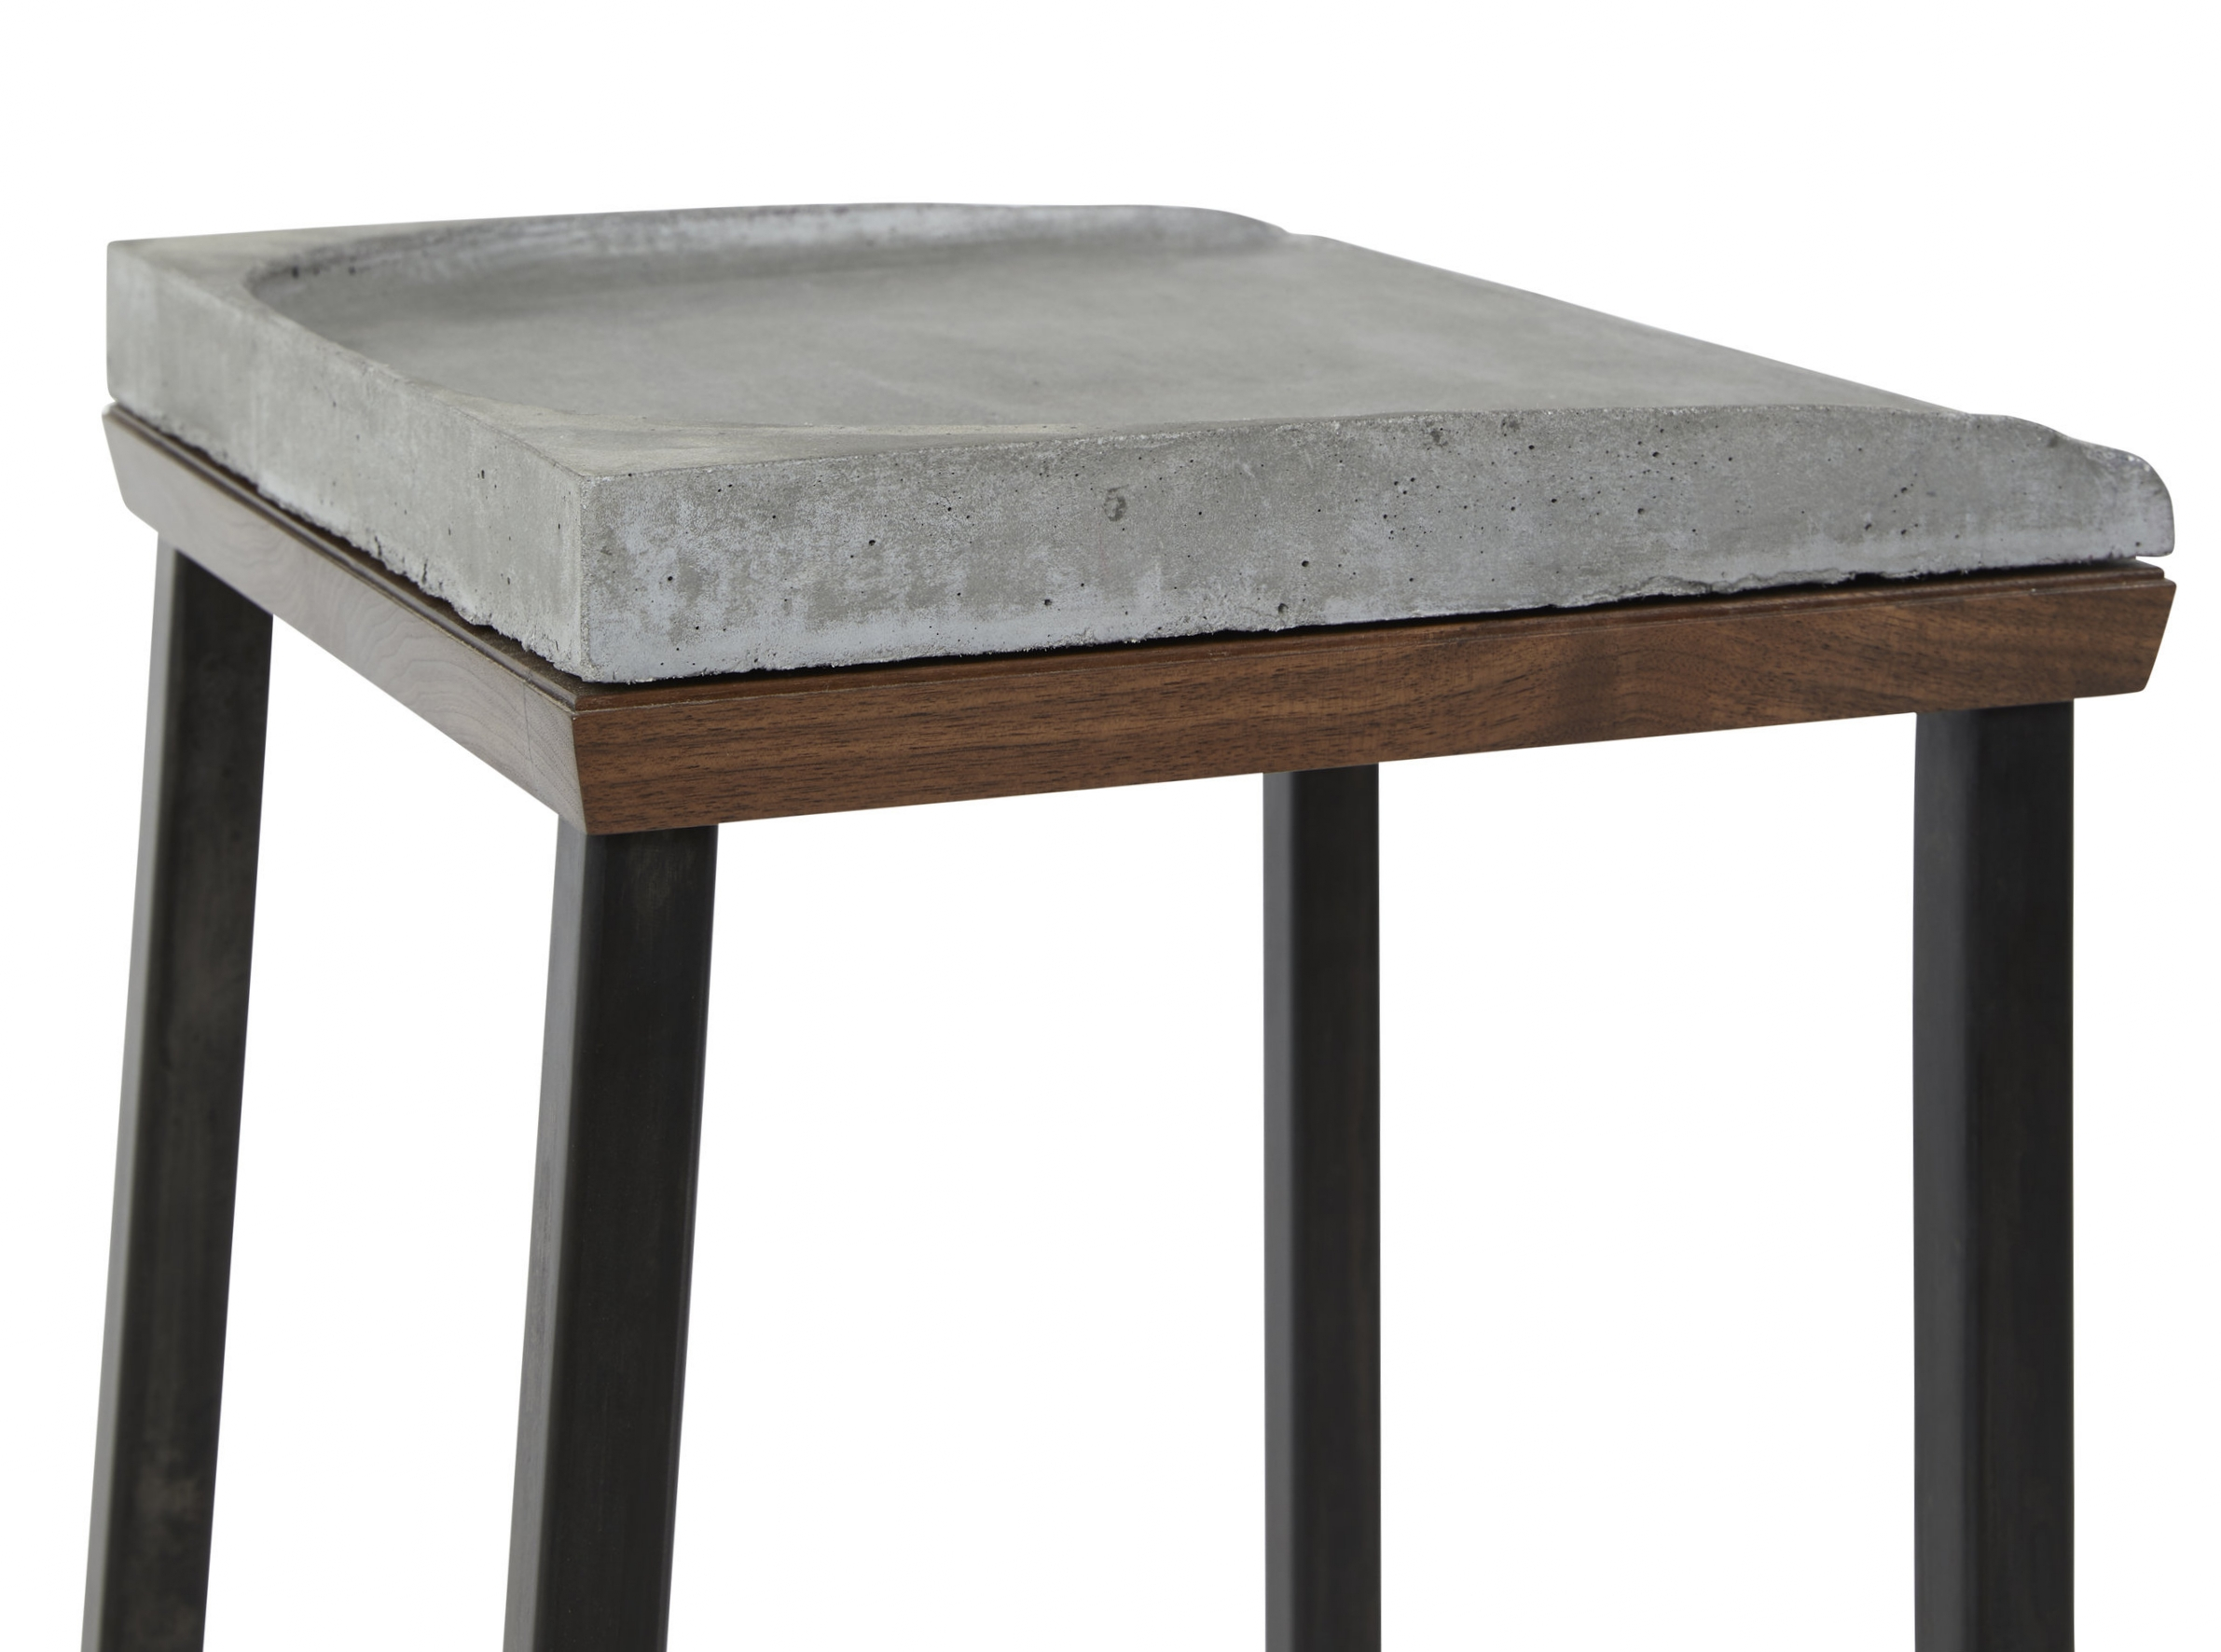 Concrete_Stool_038.jpg